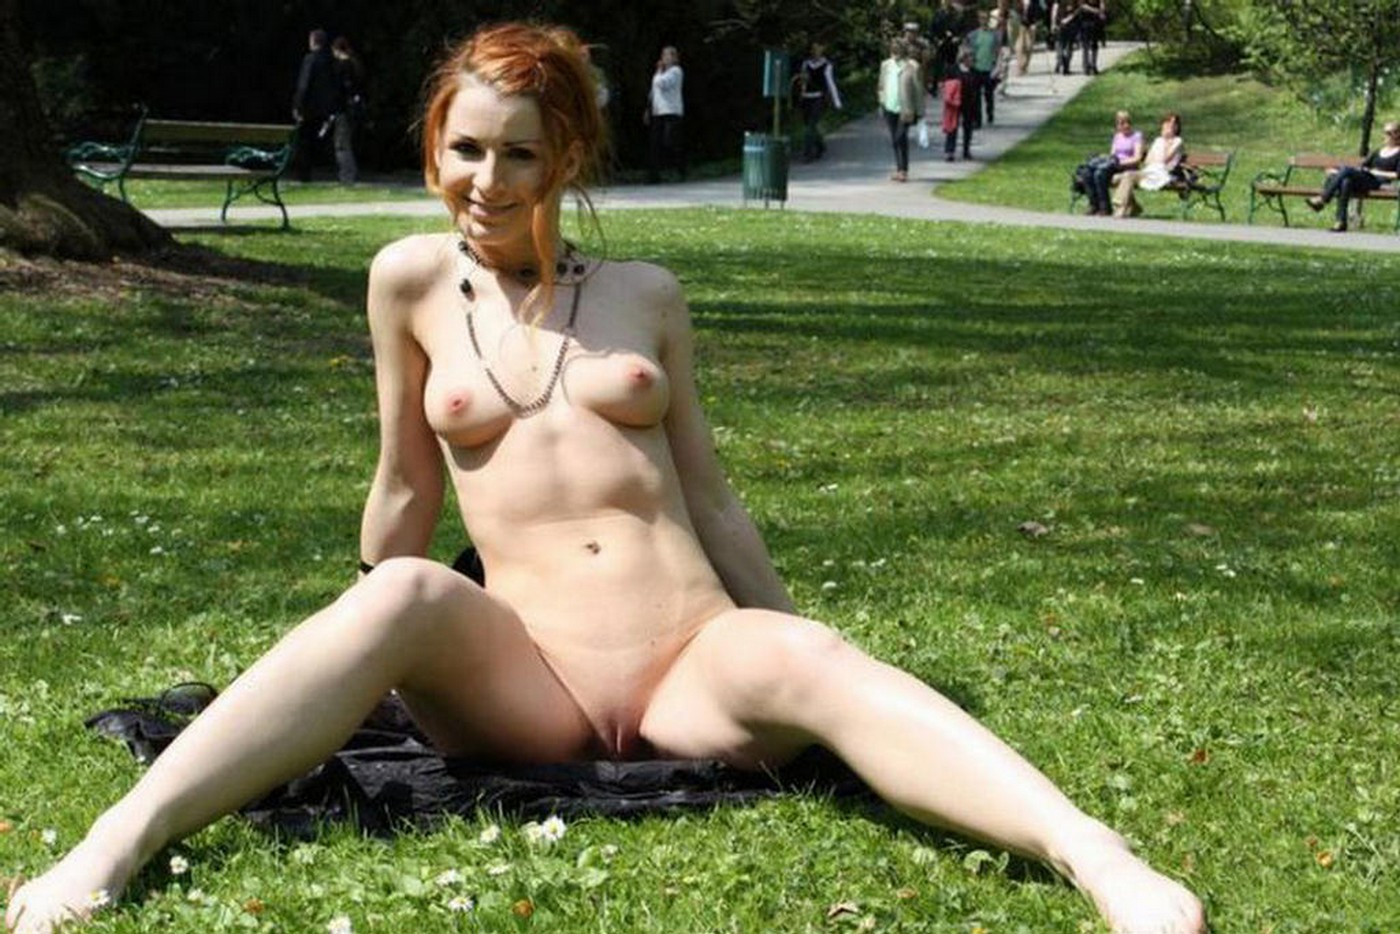 Nude On Public Video